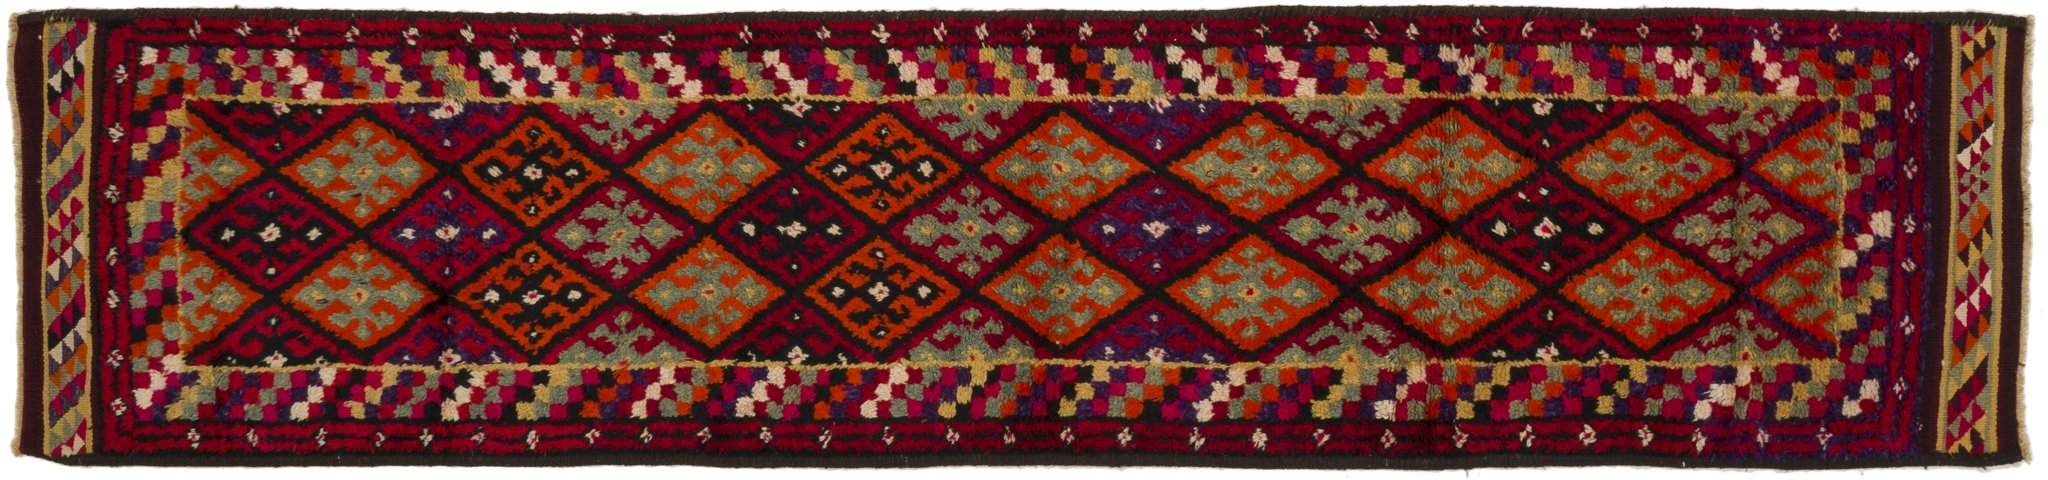 Vintage Turkish Runner Rug Keranka